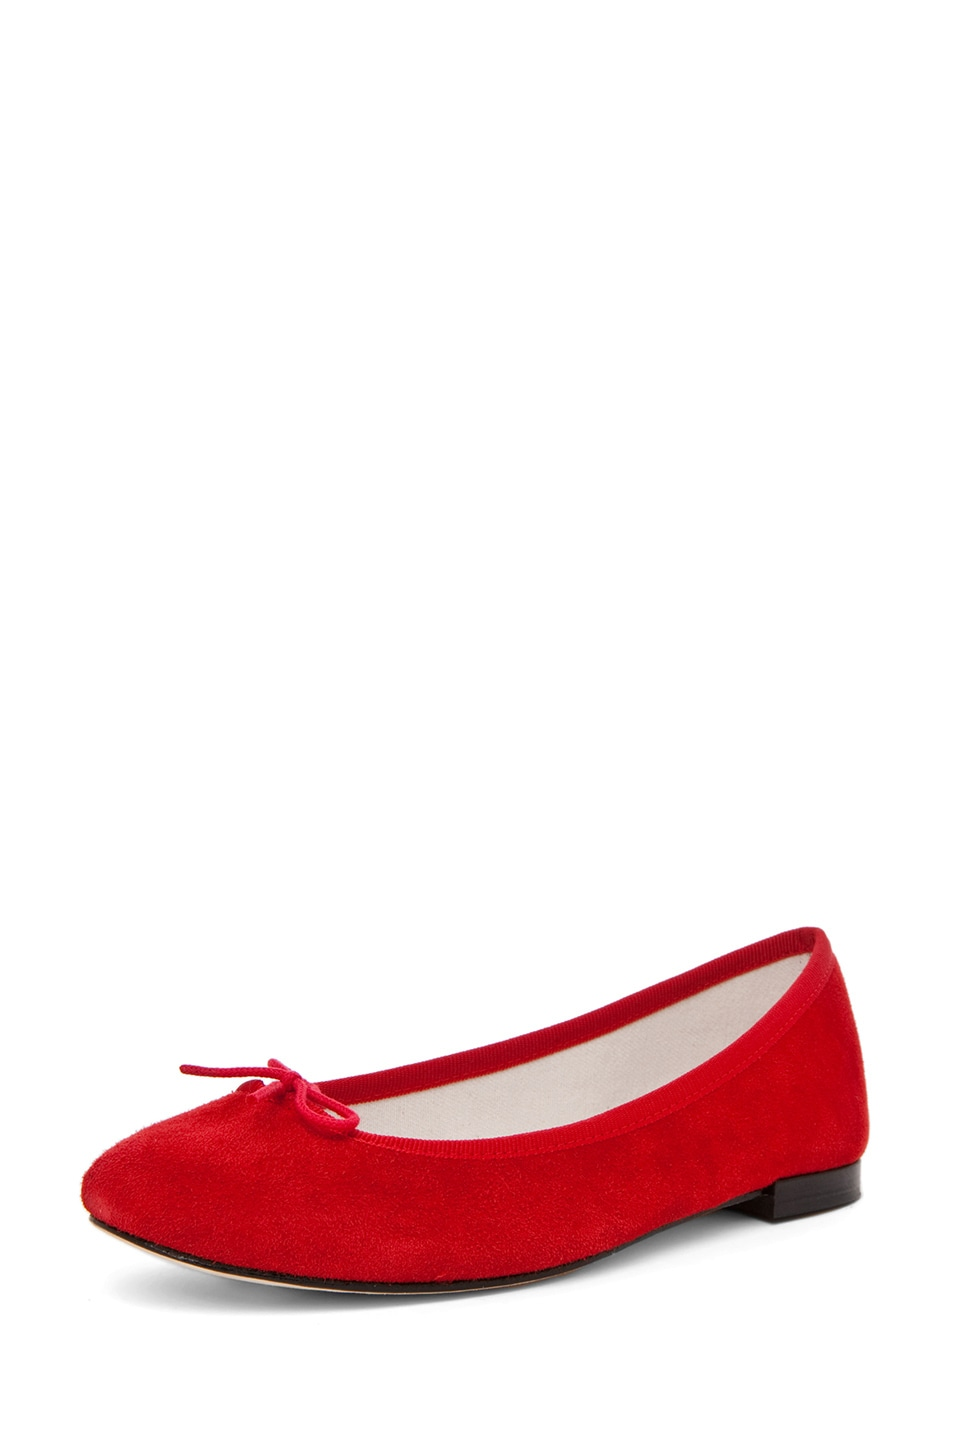 Image 2 of Repetto Suede Flat in Red